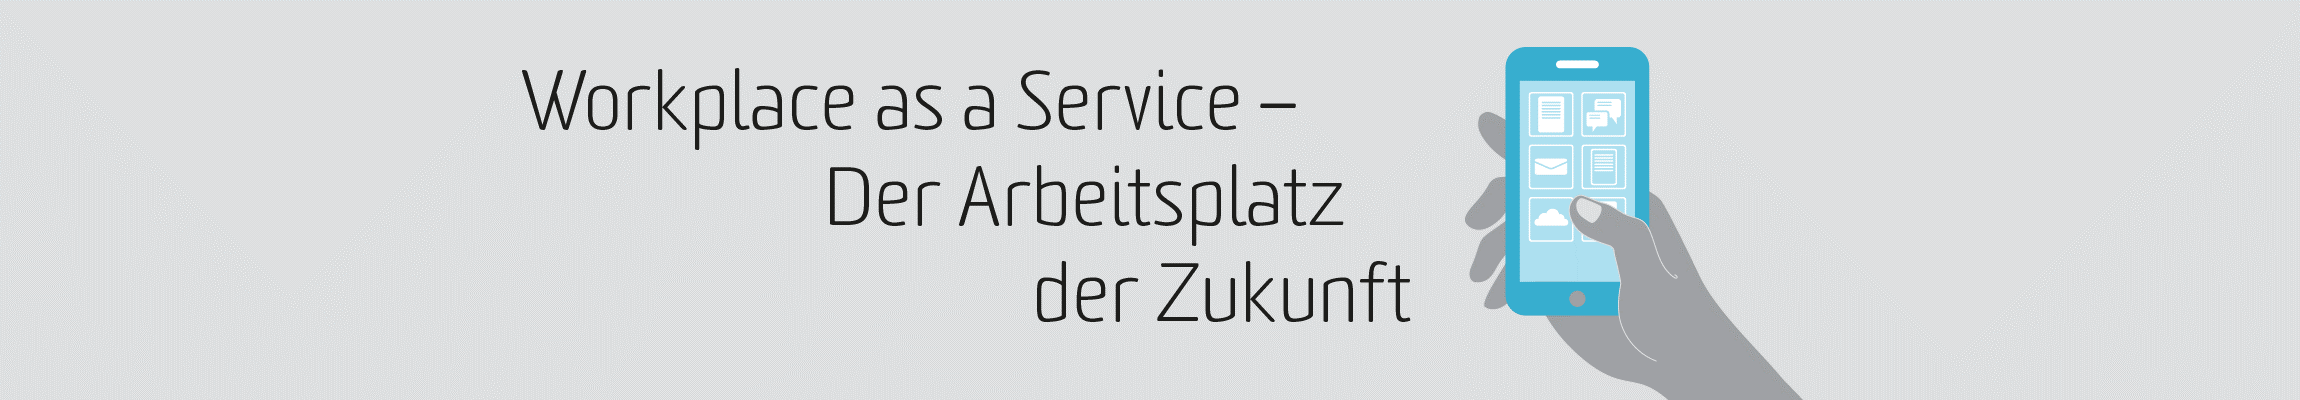 Slider für Workplace as a Service